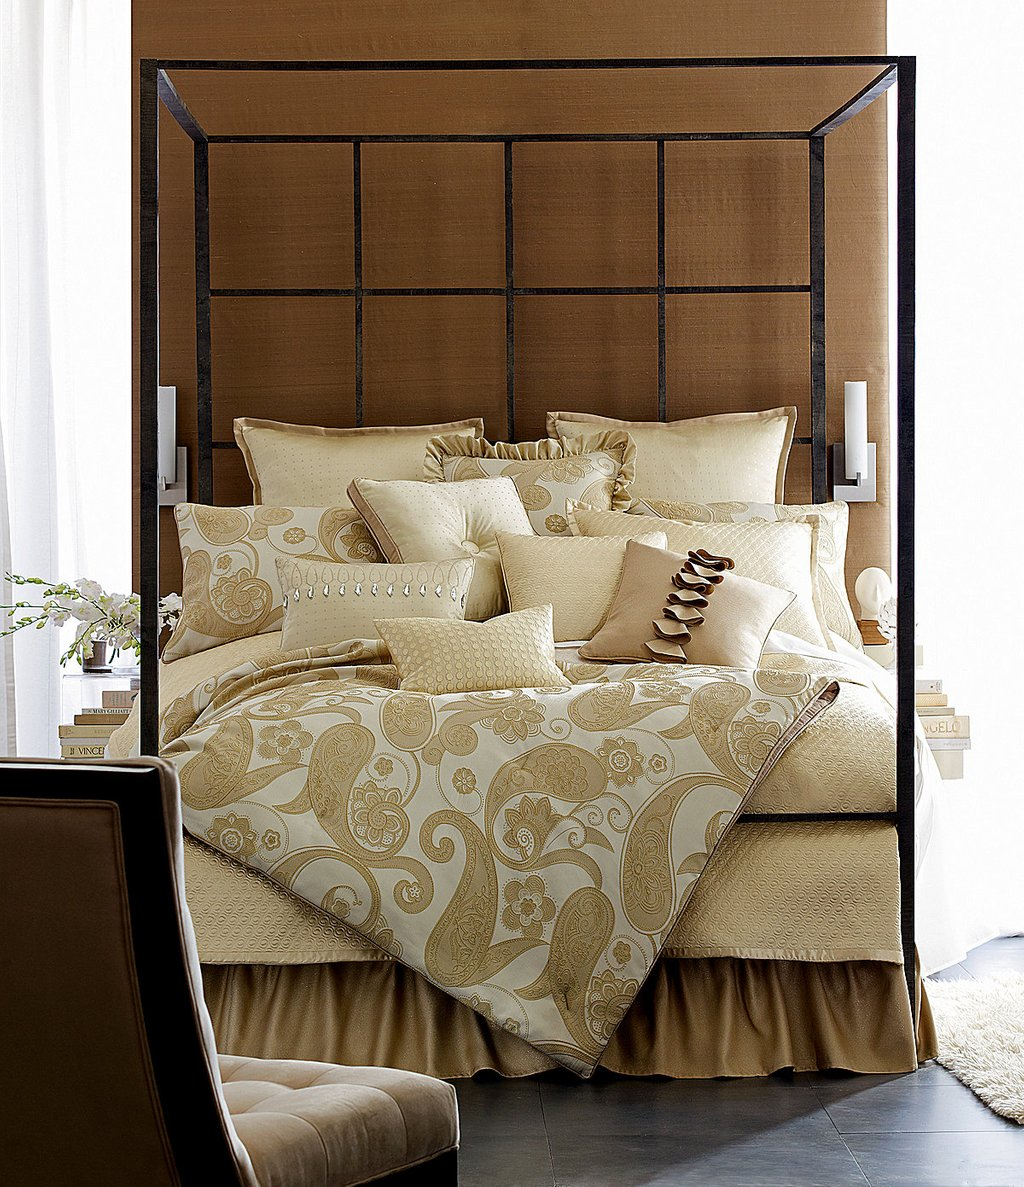 Image of: 2018 Candice Olson Bedding Collection Dillard 39 The Advantages of Candice Olson Bedding